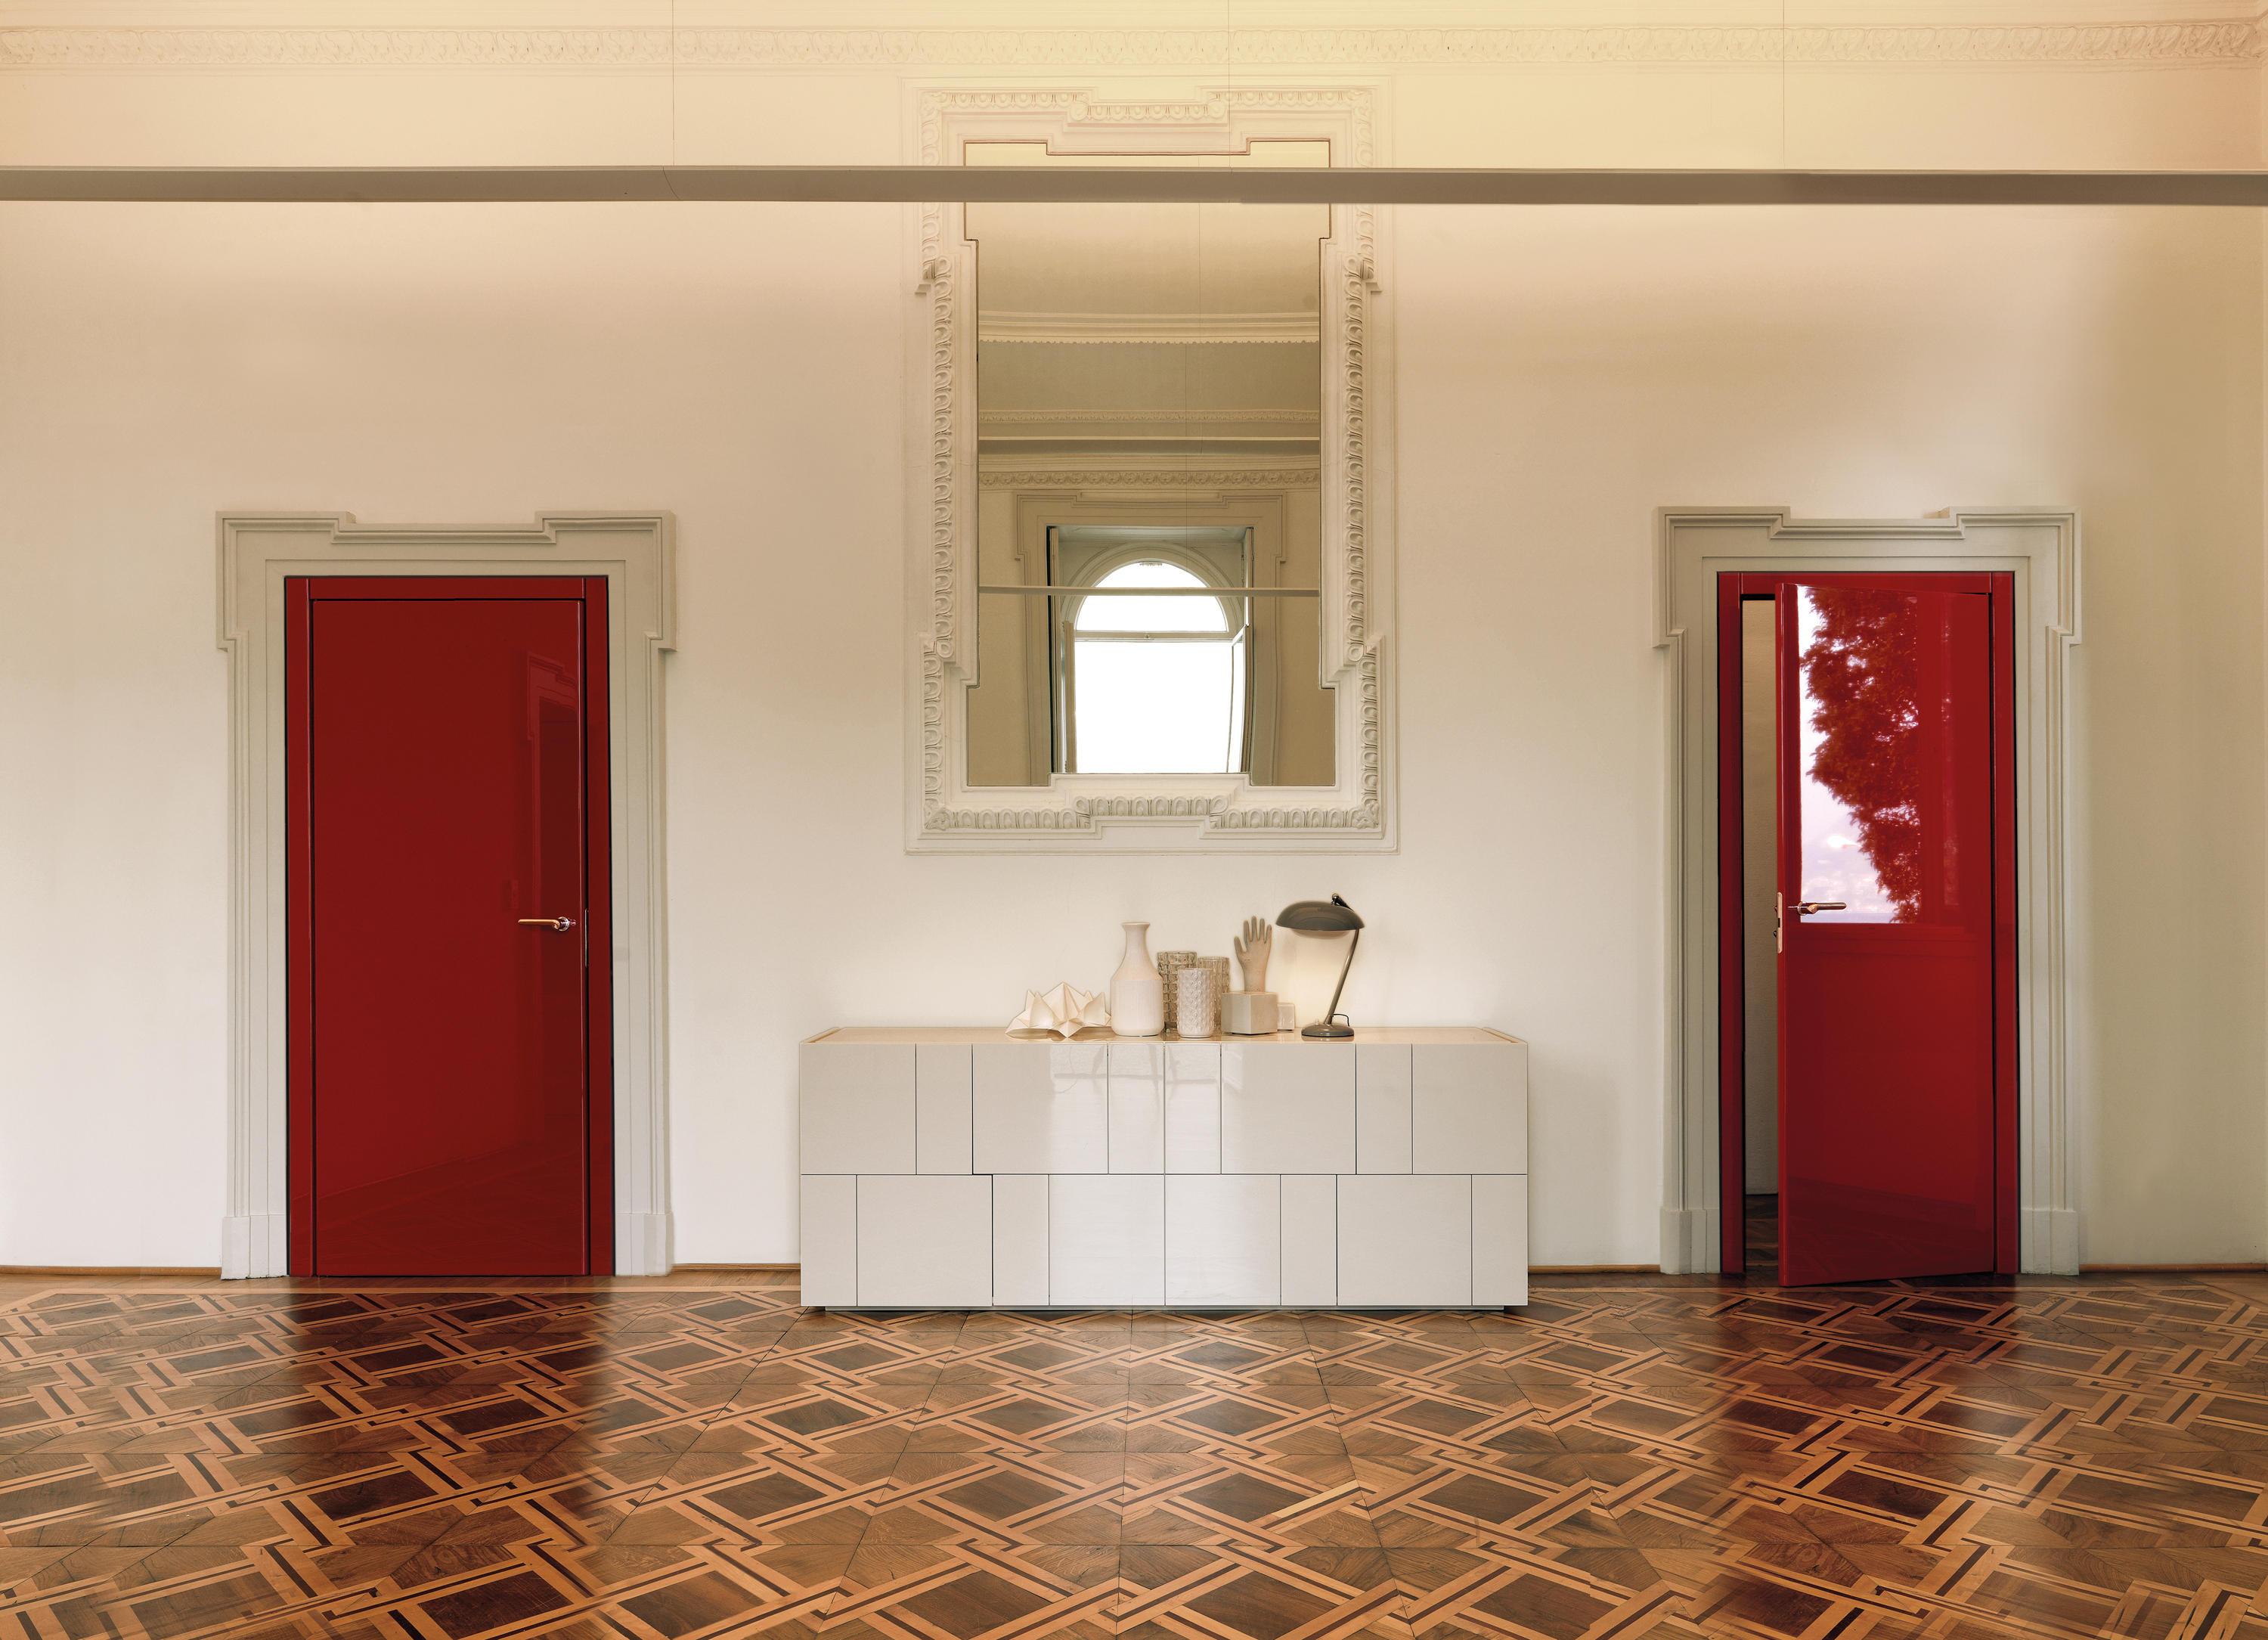 REVER - Internal doors from TRE-P & TRE-Più | Architonic